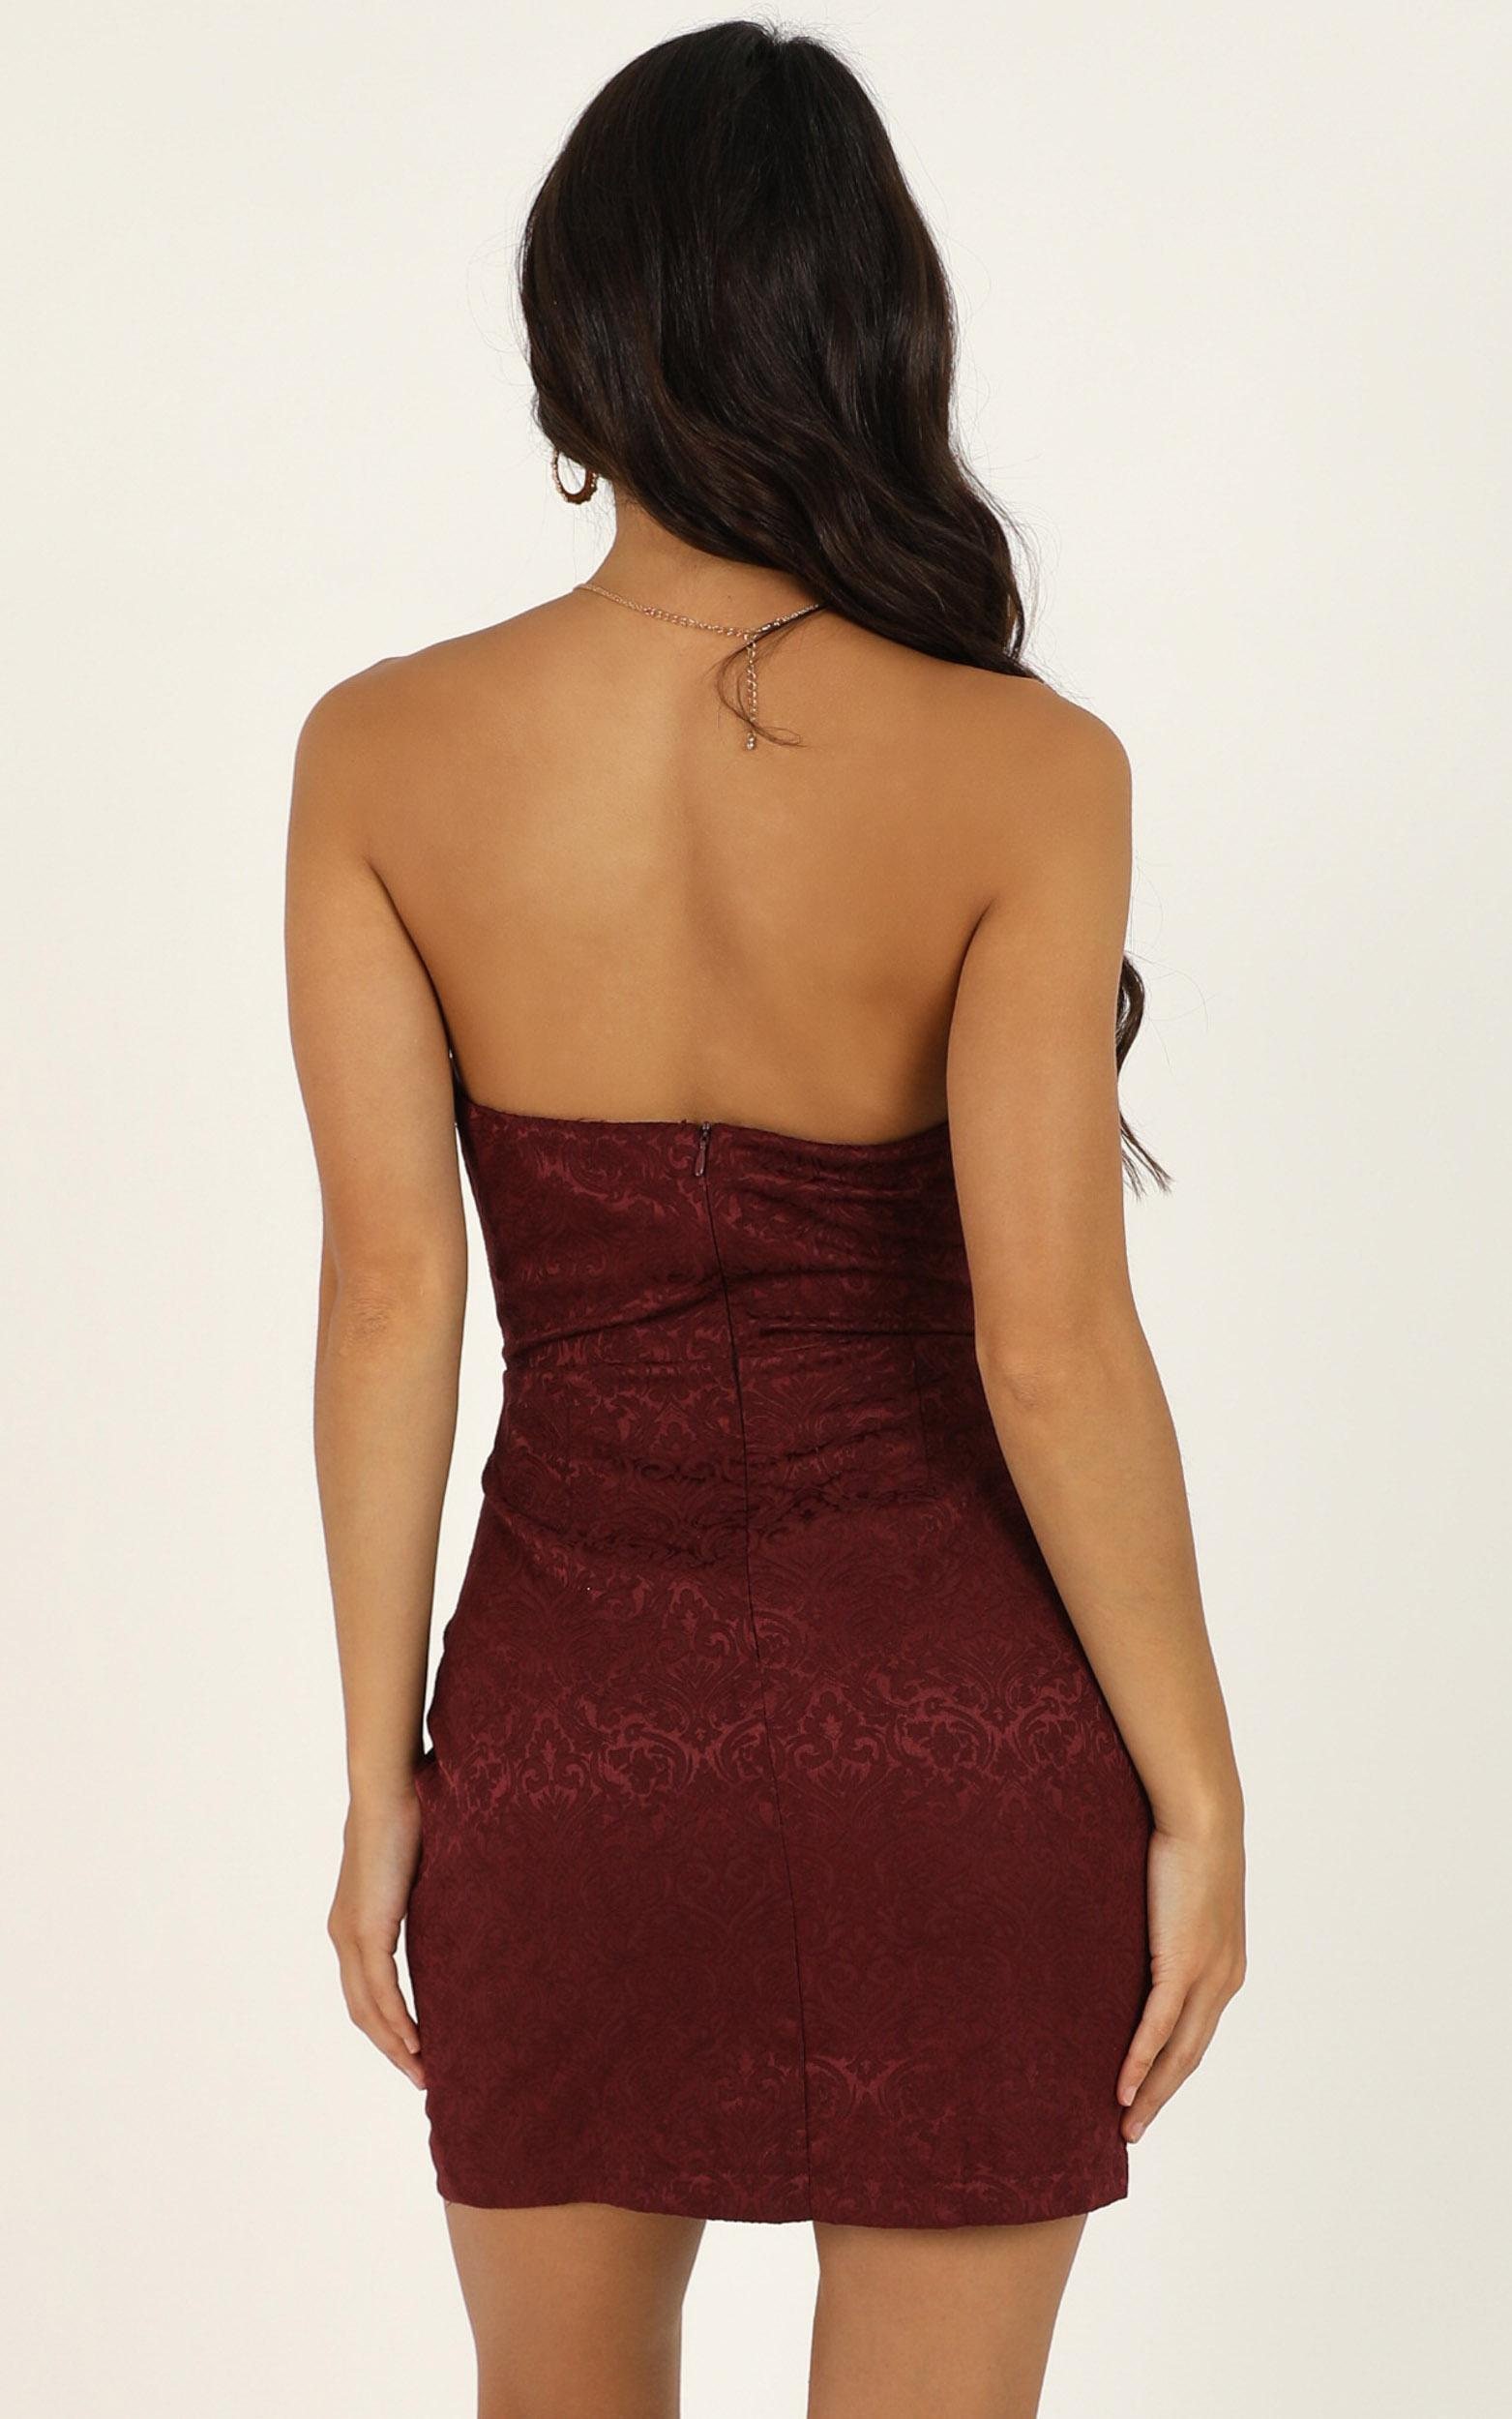 Its Too Late Dress In wine jacquard - 20 (XXXXL), Wine, hi-res image number null